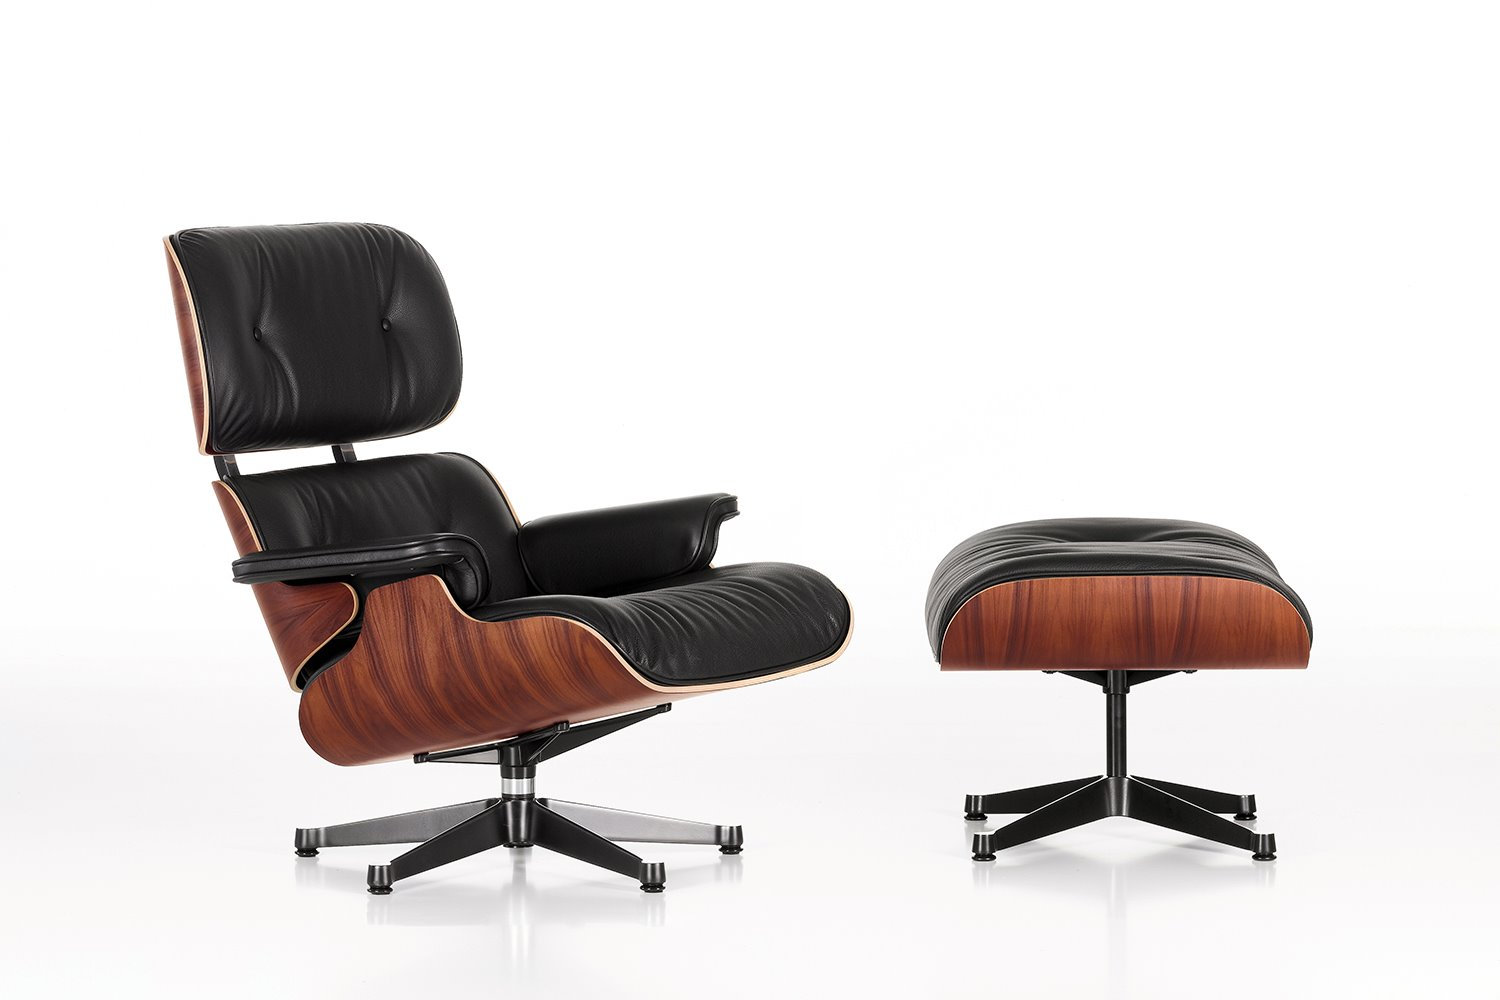 eames 49289 Lounge Chair & Ottoman XL master